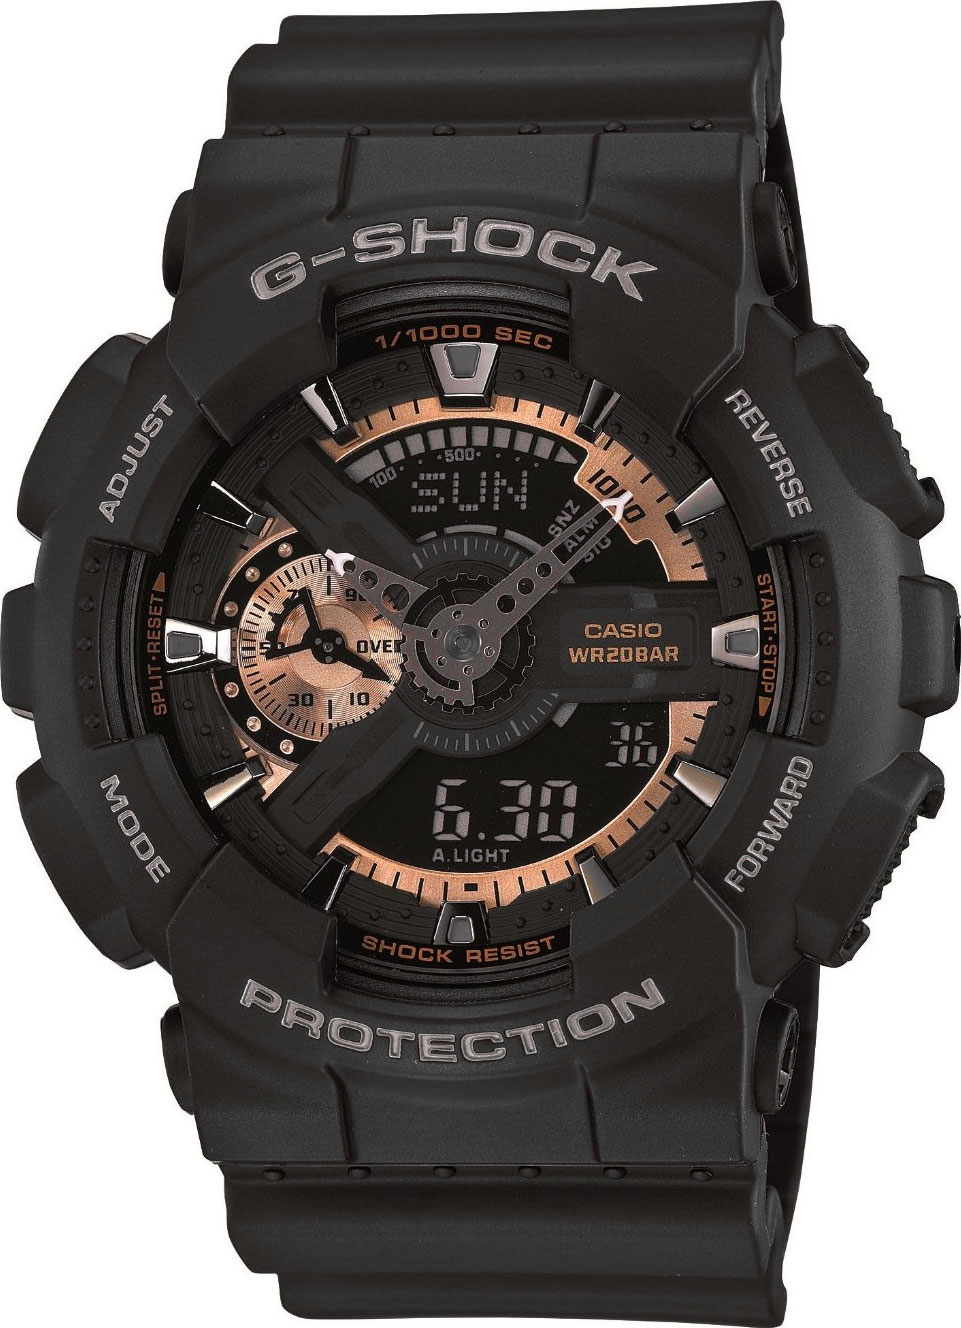 Casio G-shock GA-110RG-1A часы casio g shock ga 110gb 1a